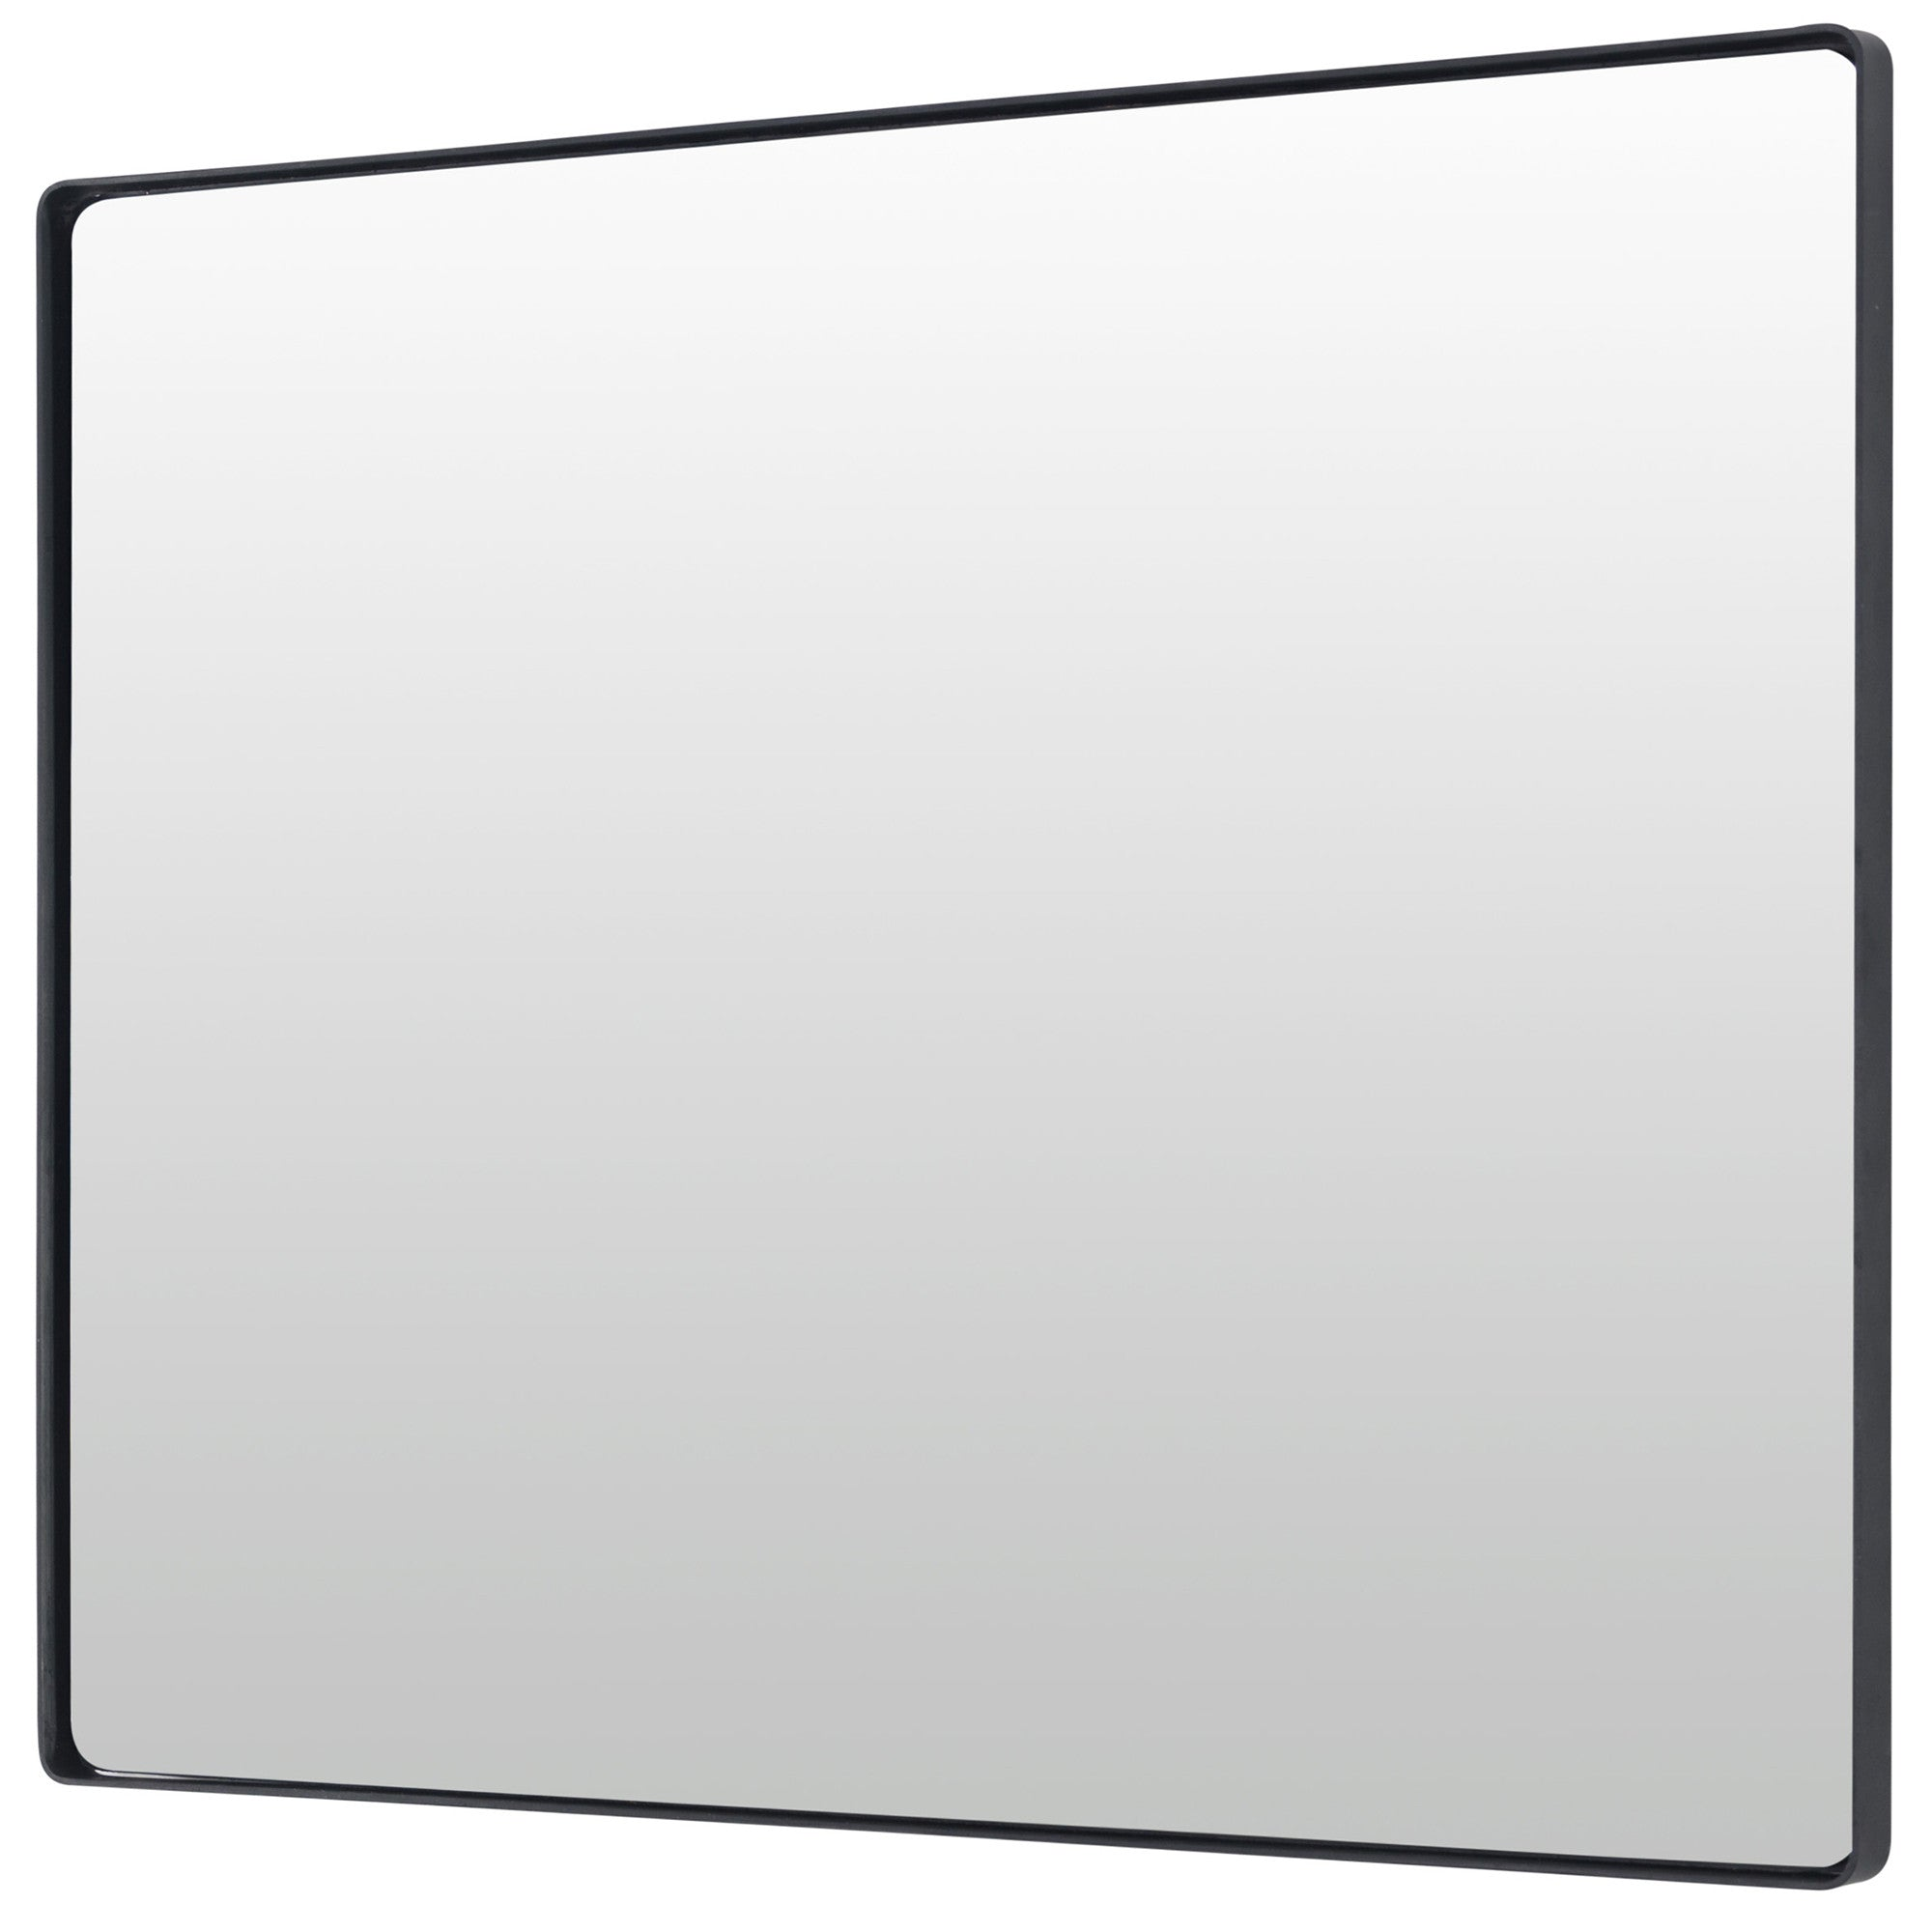 Kye 24x30 Rectangular Rounded Wall Mirror - Black - 407A02BL